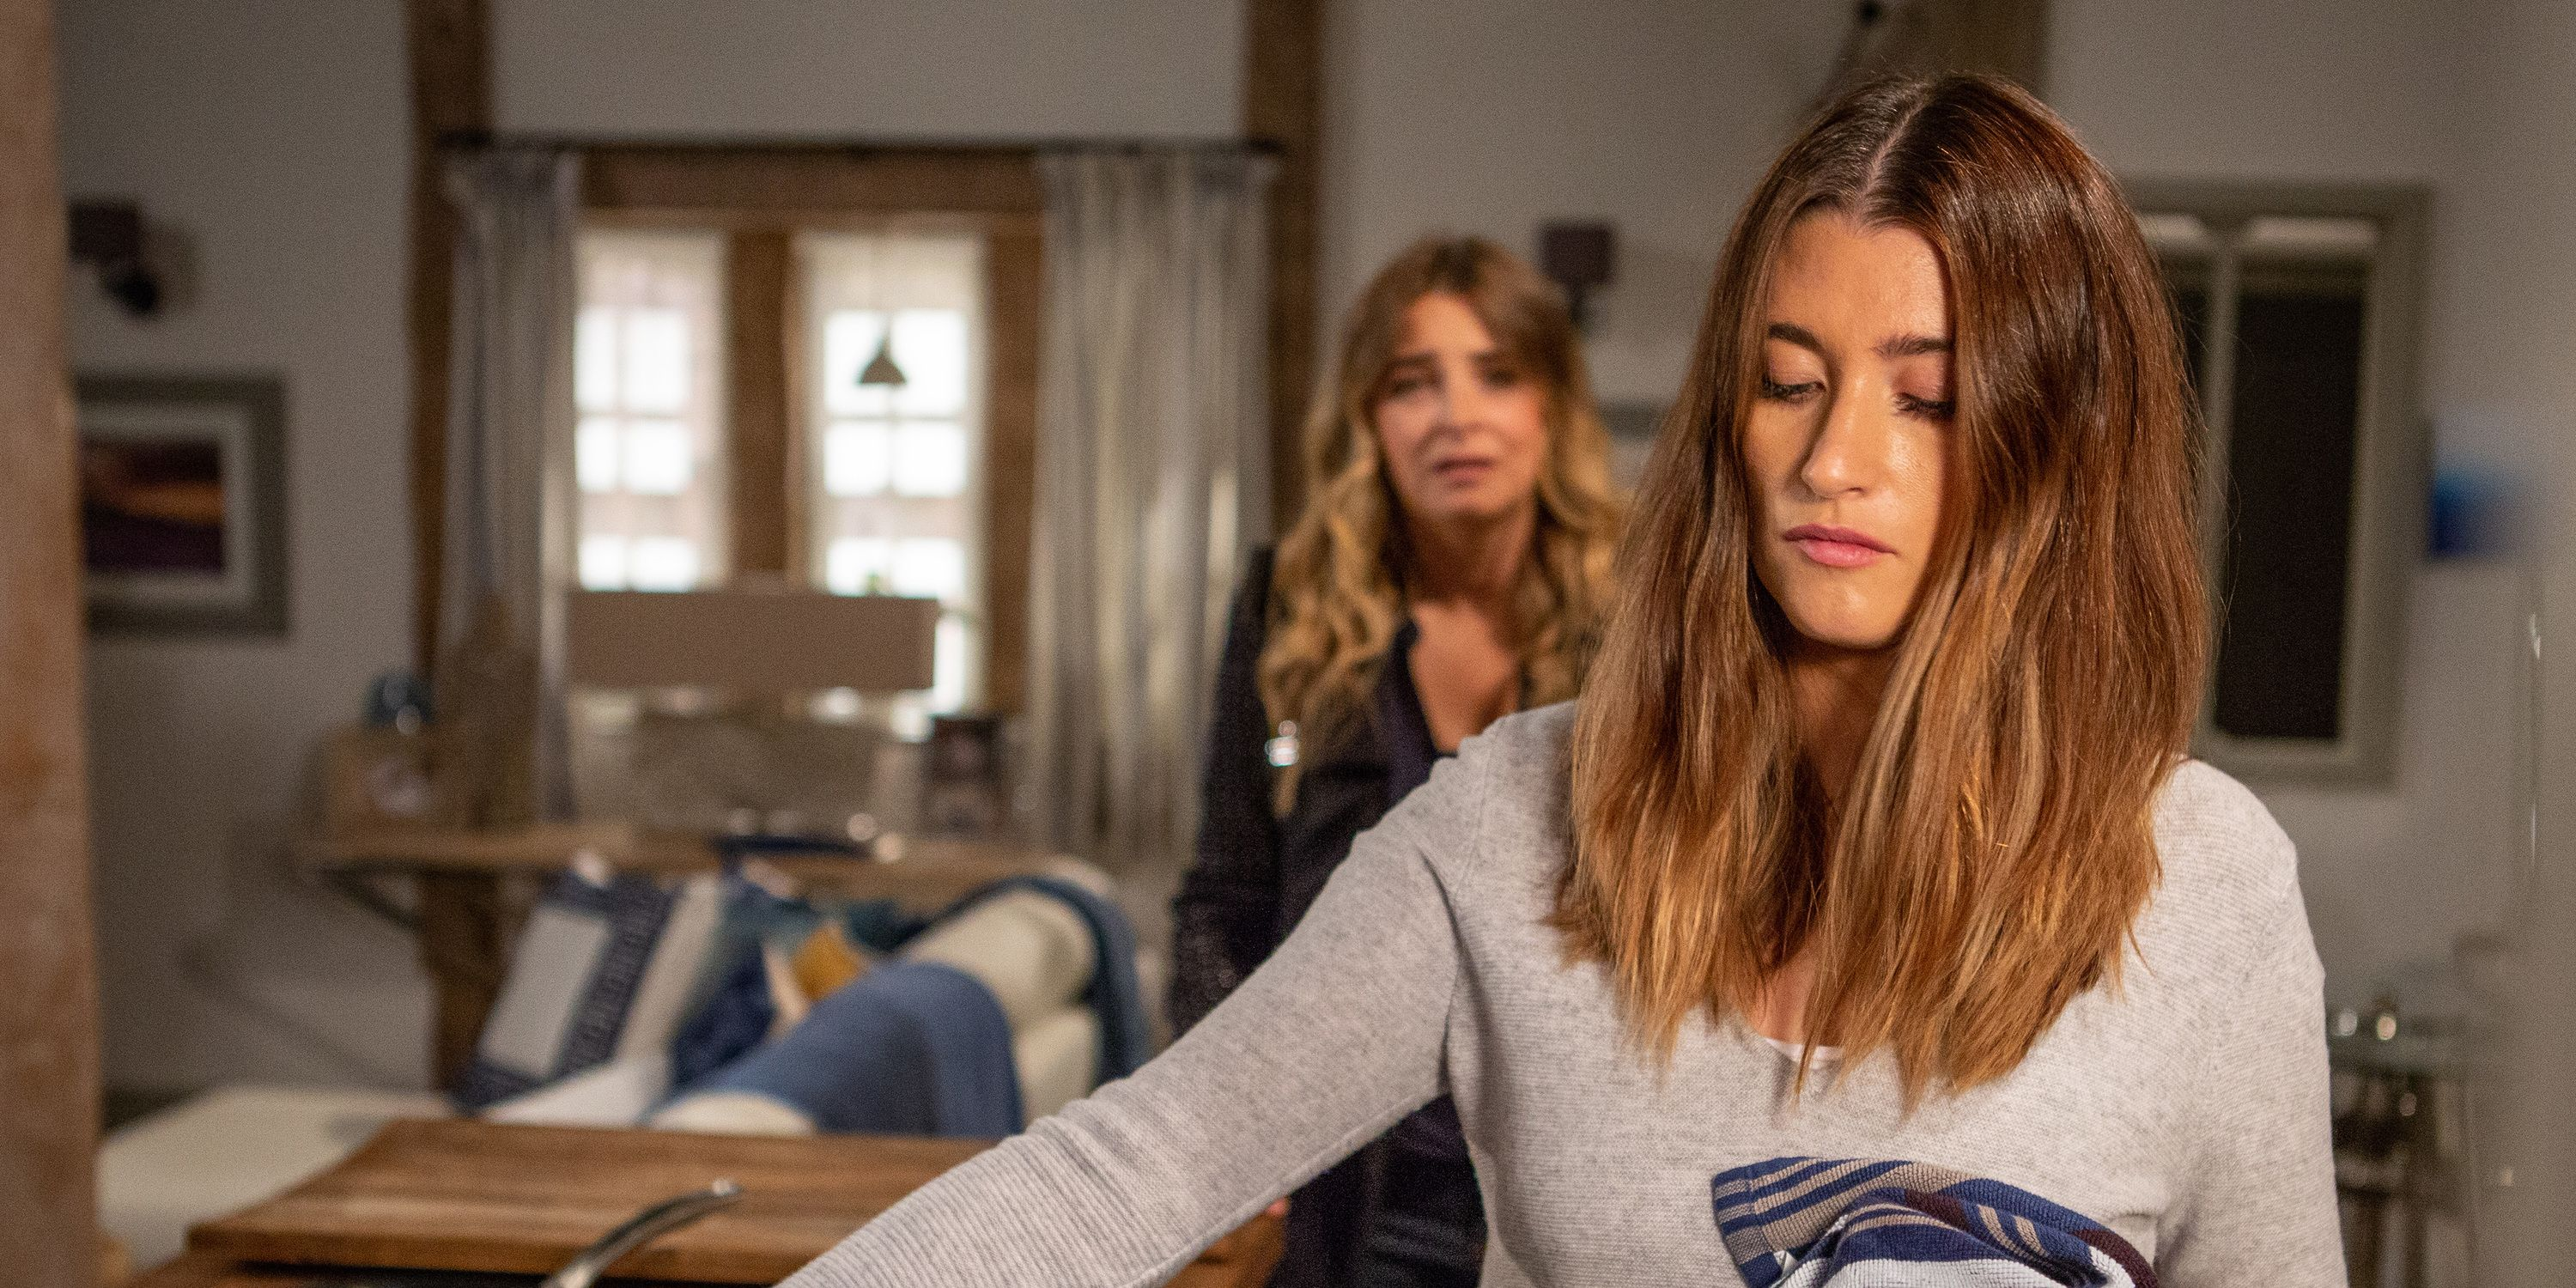 Debbie Dingle gets a text from Joe Tate's phone in Emmerdale